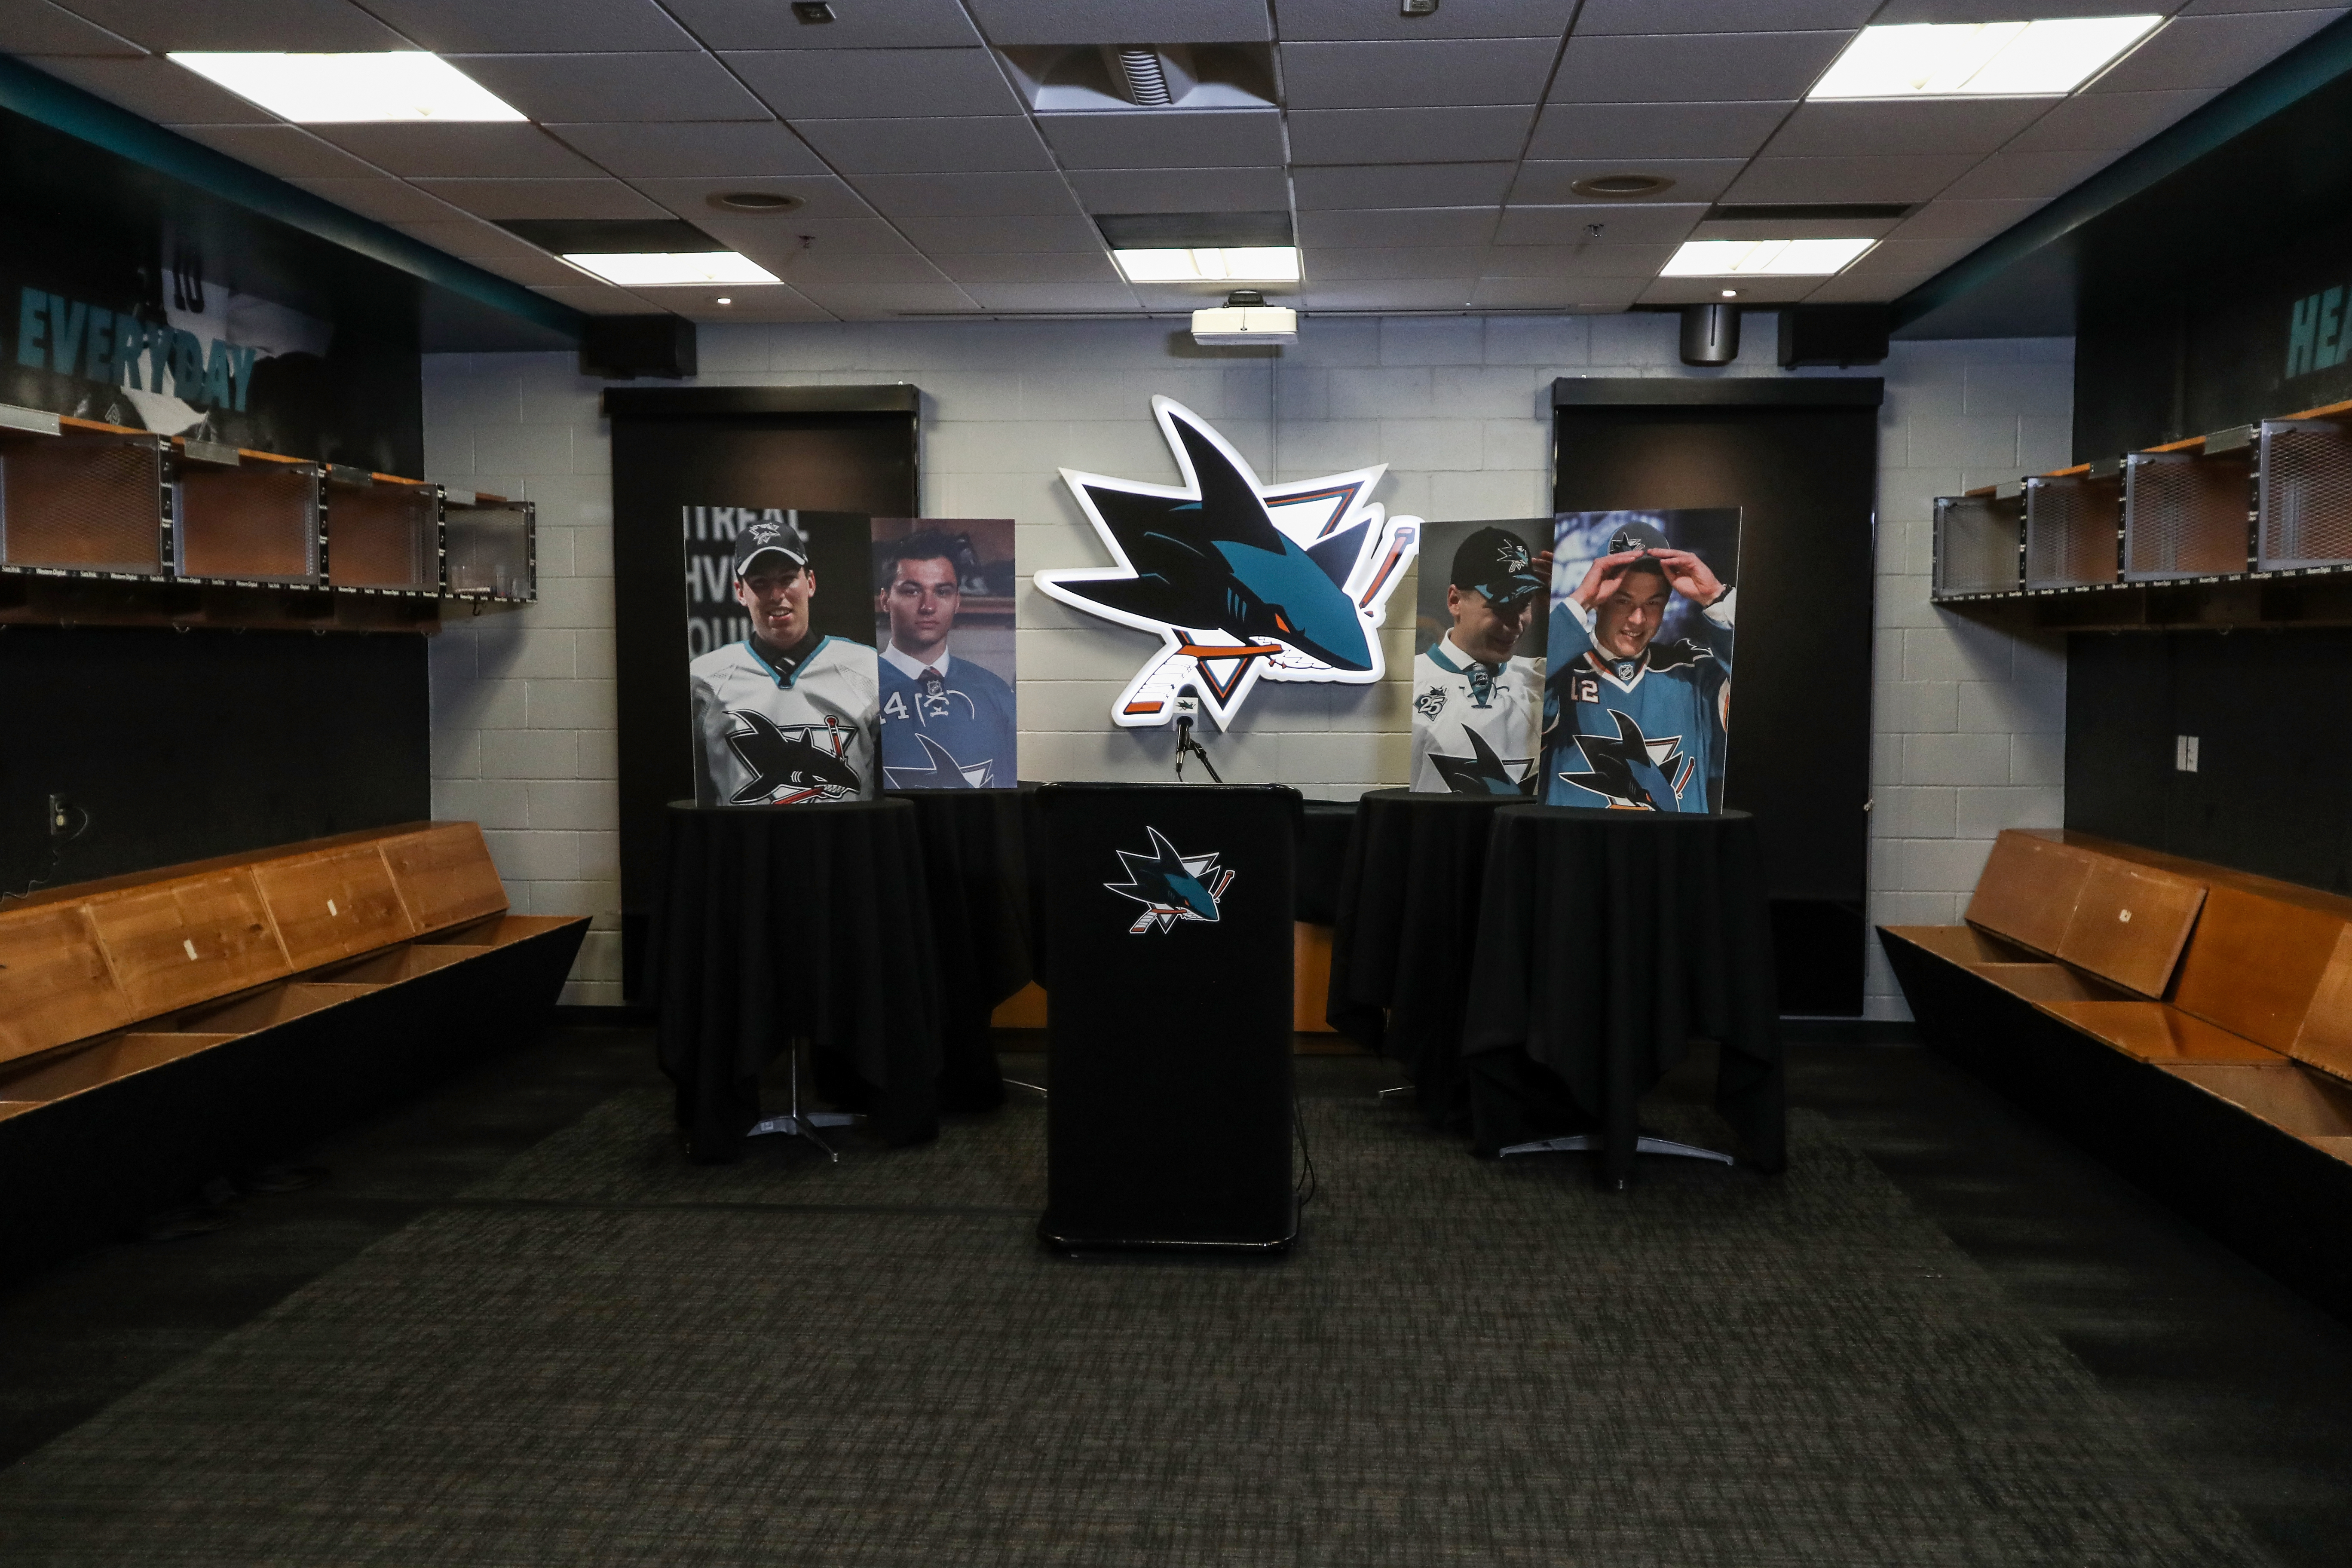 A general view of the podium in the San Jose Sharks locker room at SAP Center on October 6, 2020 in San Jose, California. The 2020 NHL Draft was held virtually due to the ongoing Coronavirus pandemic.